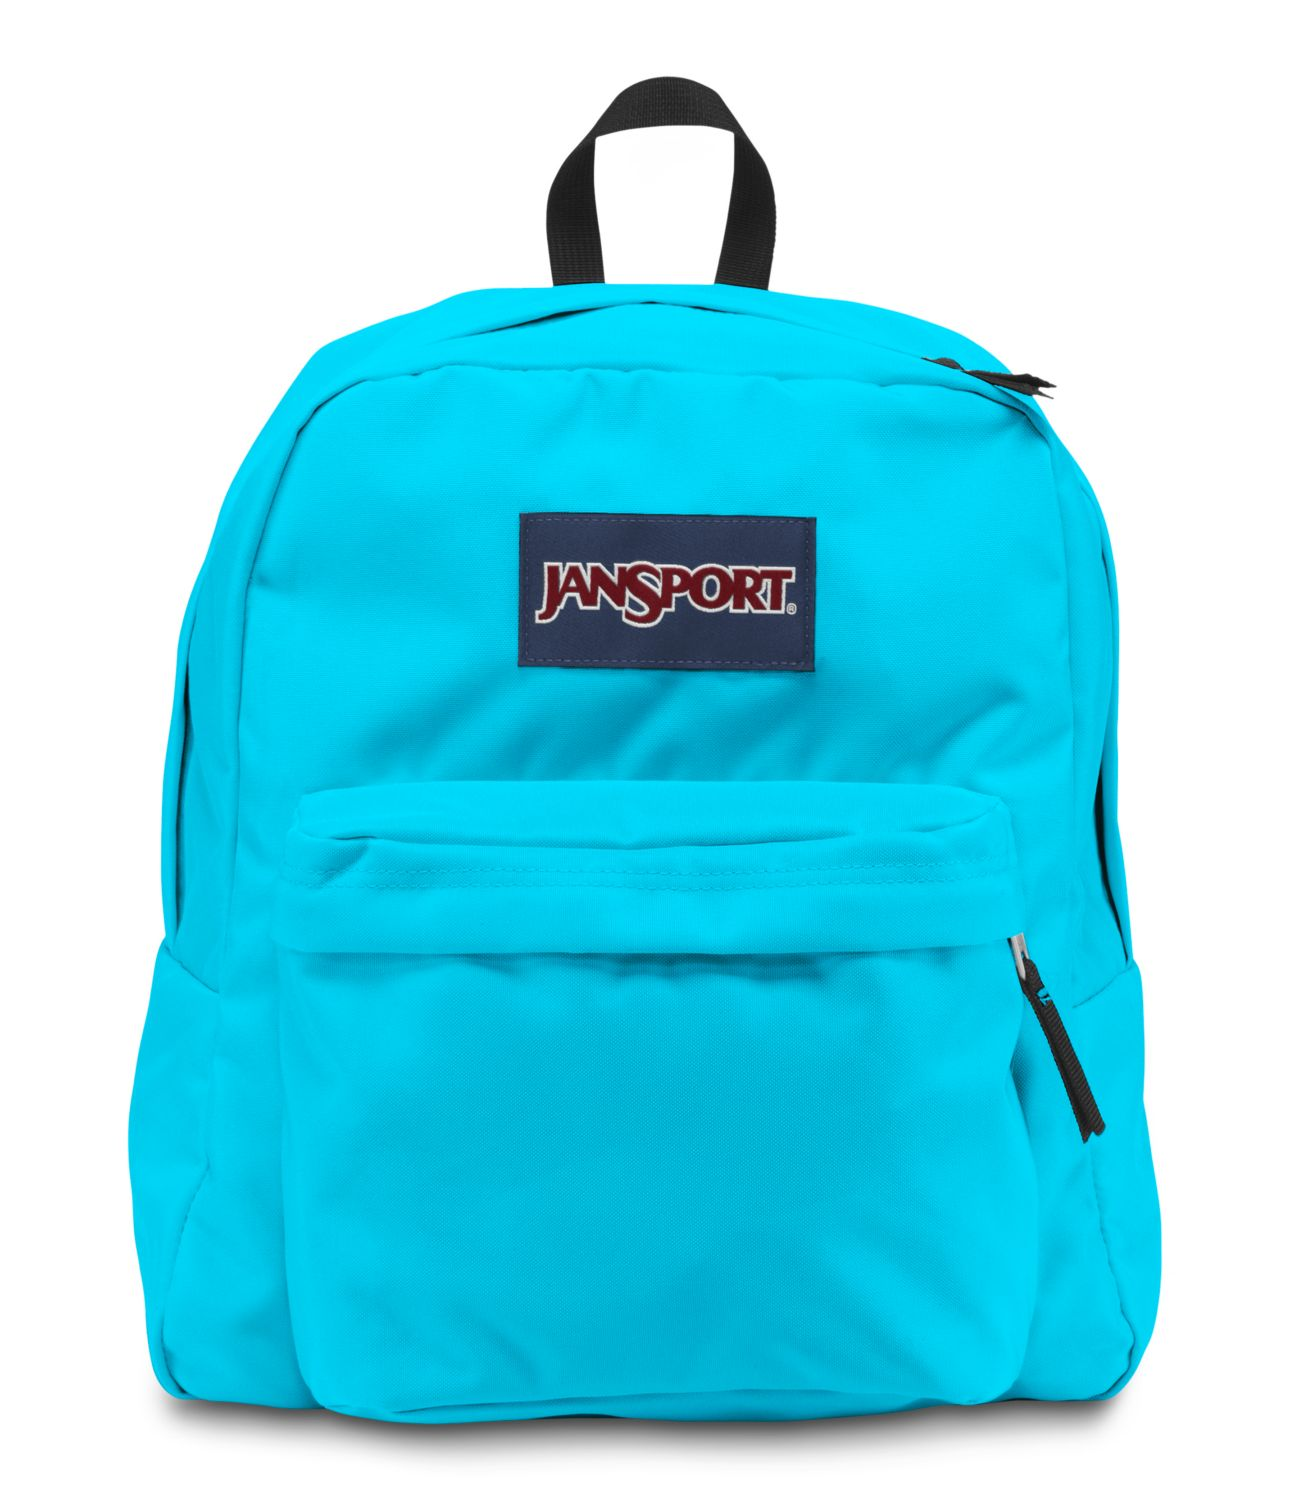 Blue Jansport Backpacks bLgfU9O9